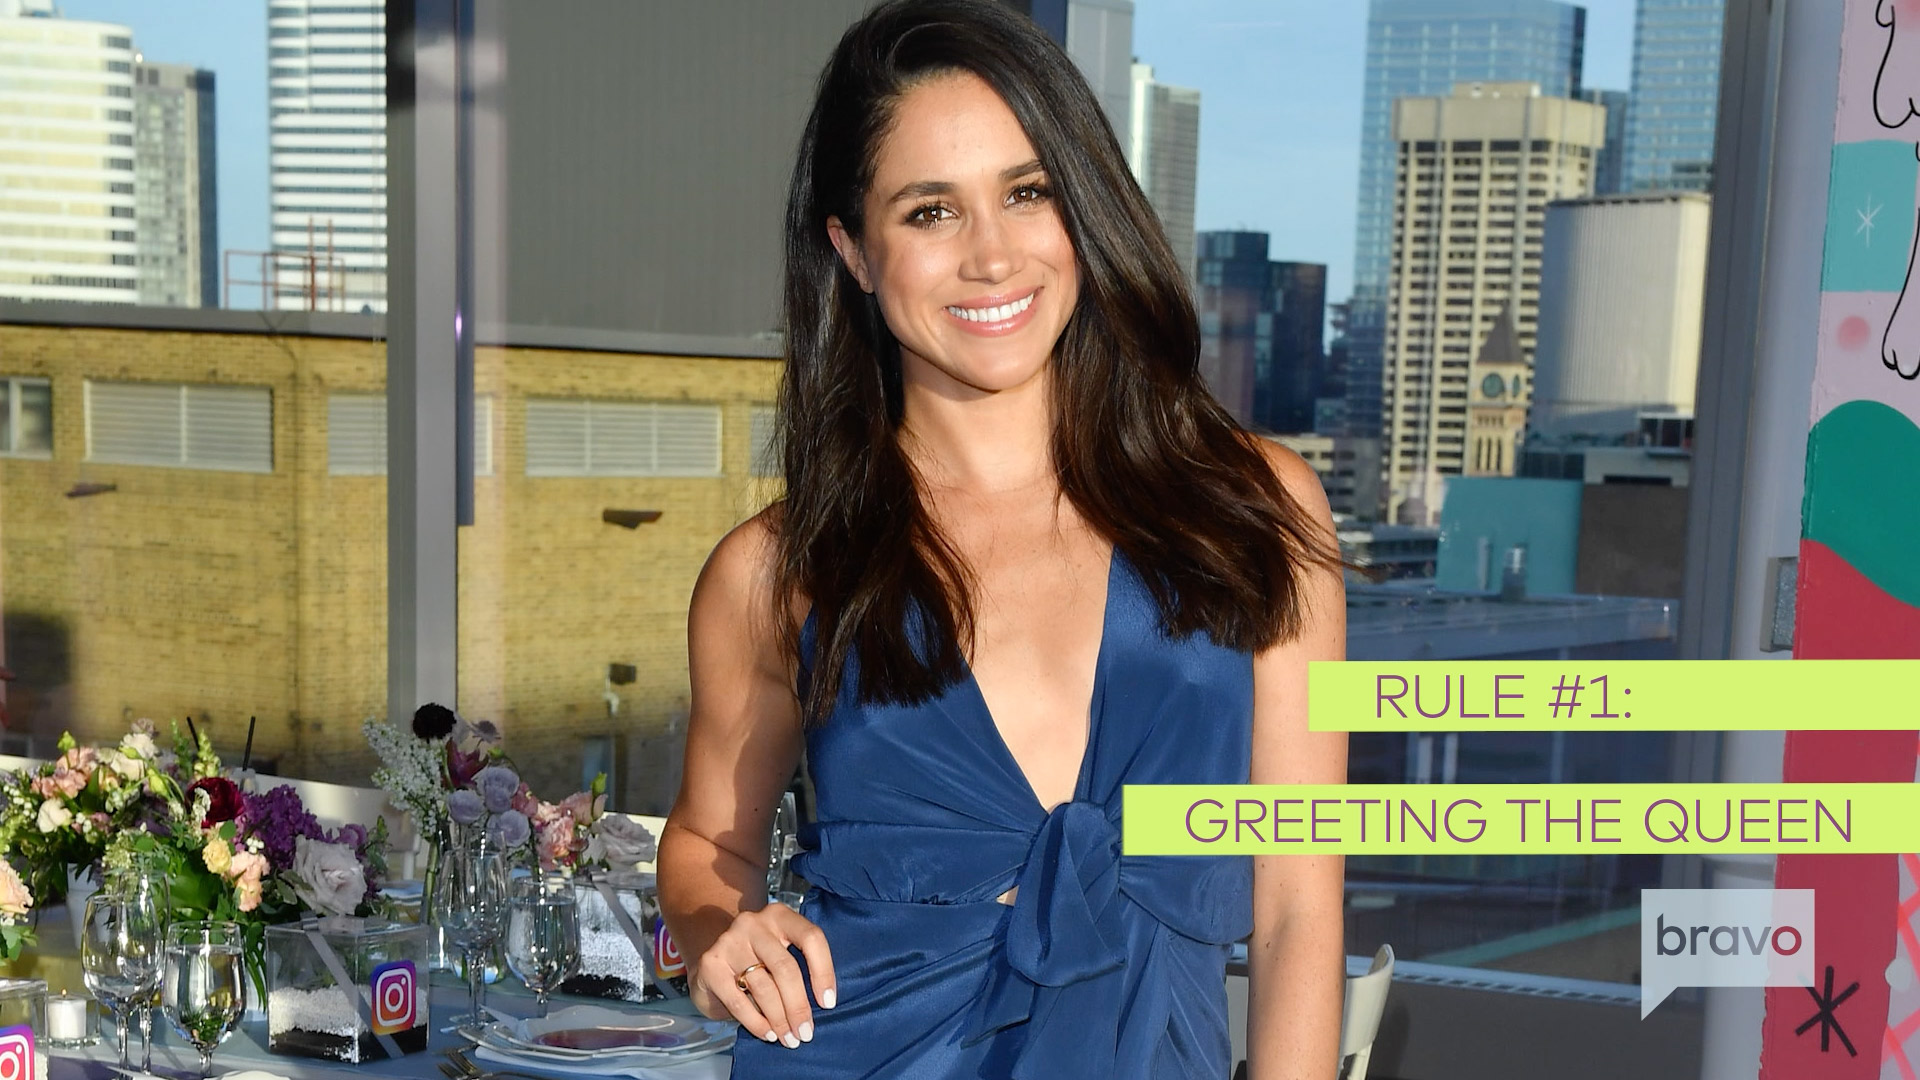 She May Be a Royal Now, But Meghan Markle Still Cooks for Herself and Prince Harry Every Day